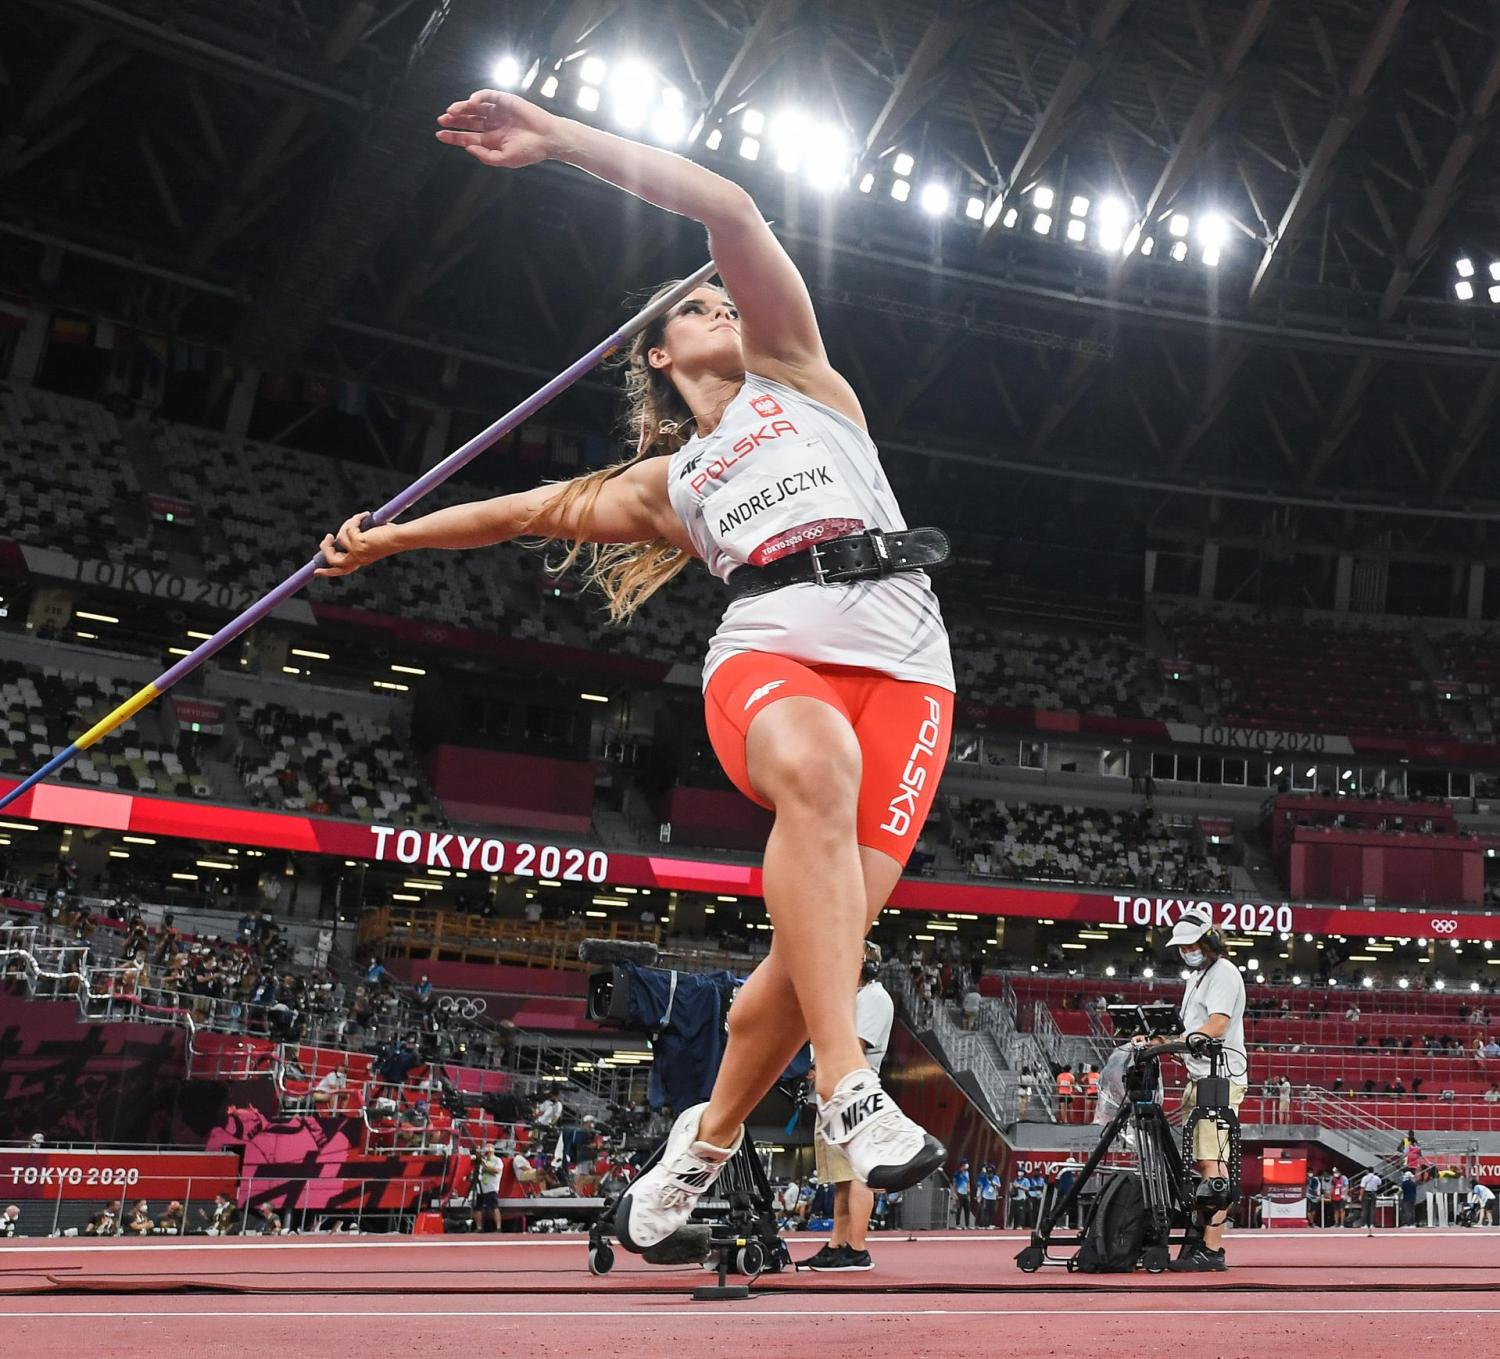 Polish Olympian Auctioning Off Silver Medal To Raise Money For Boy's Heart Surgery